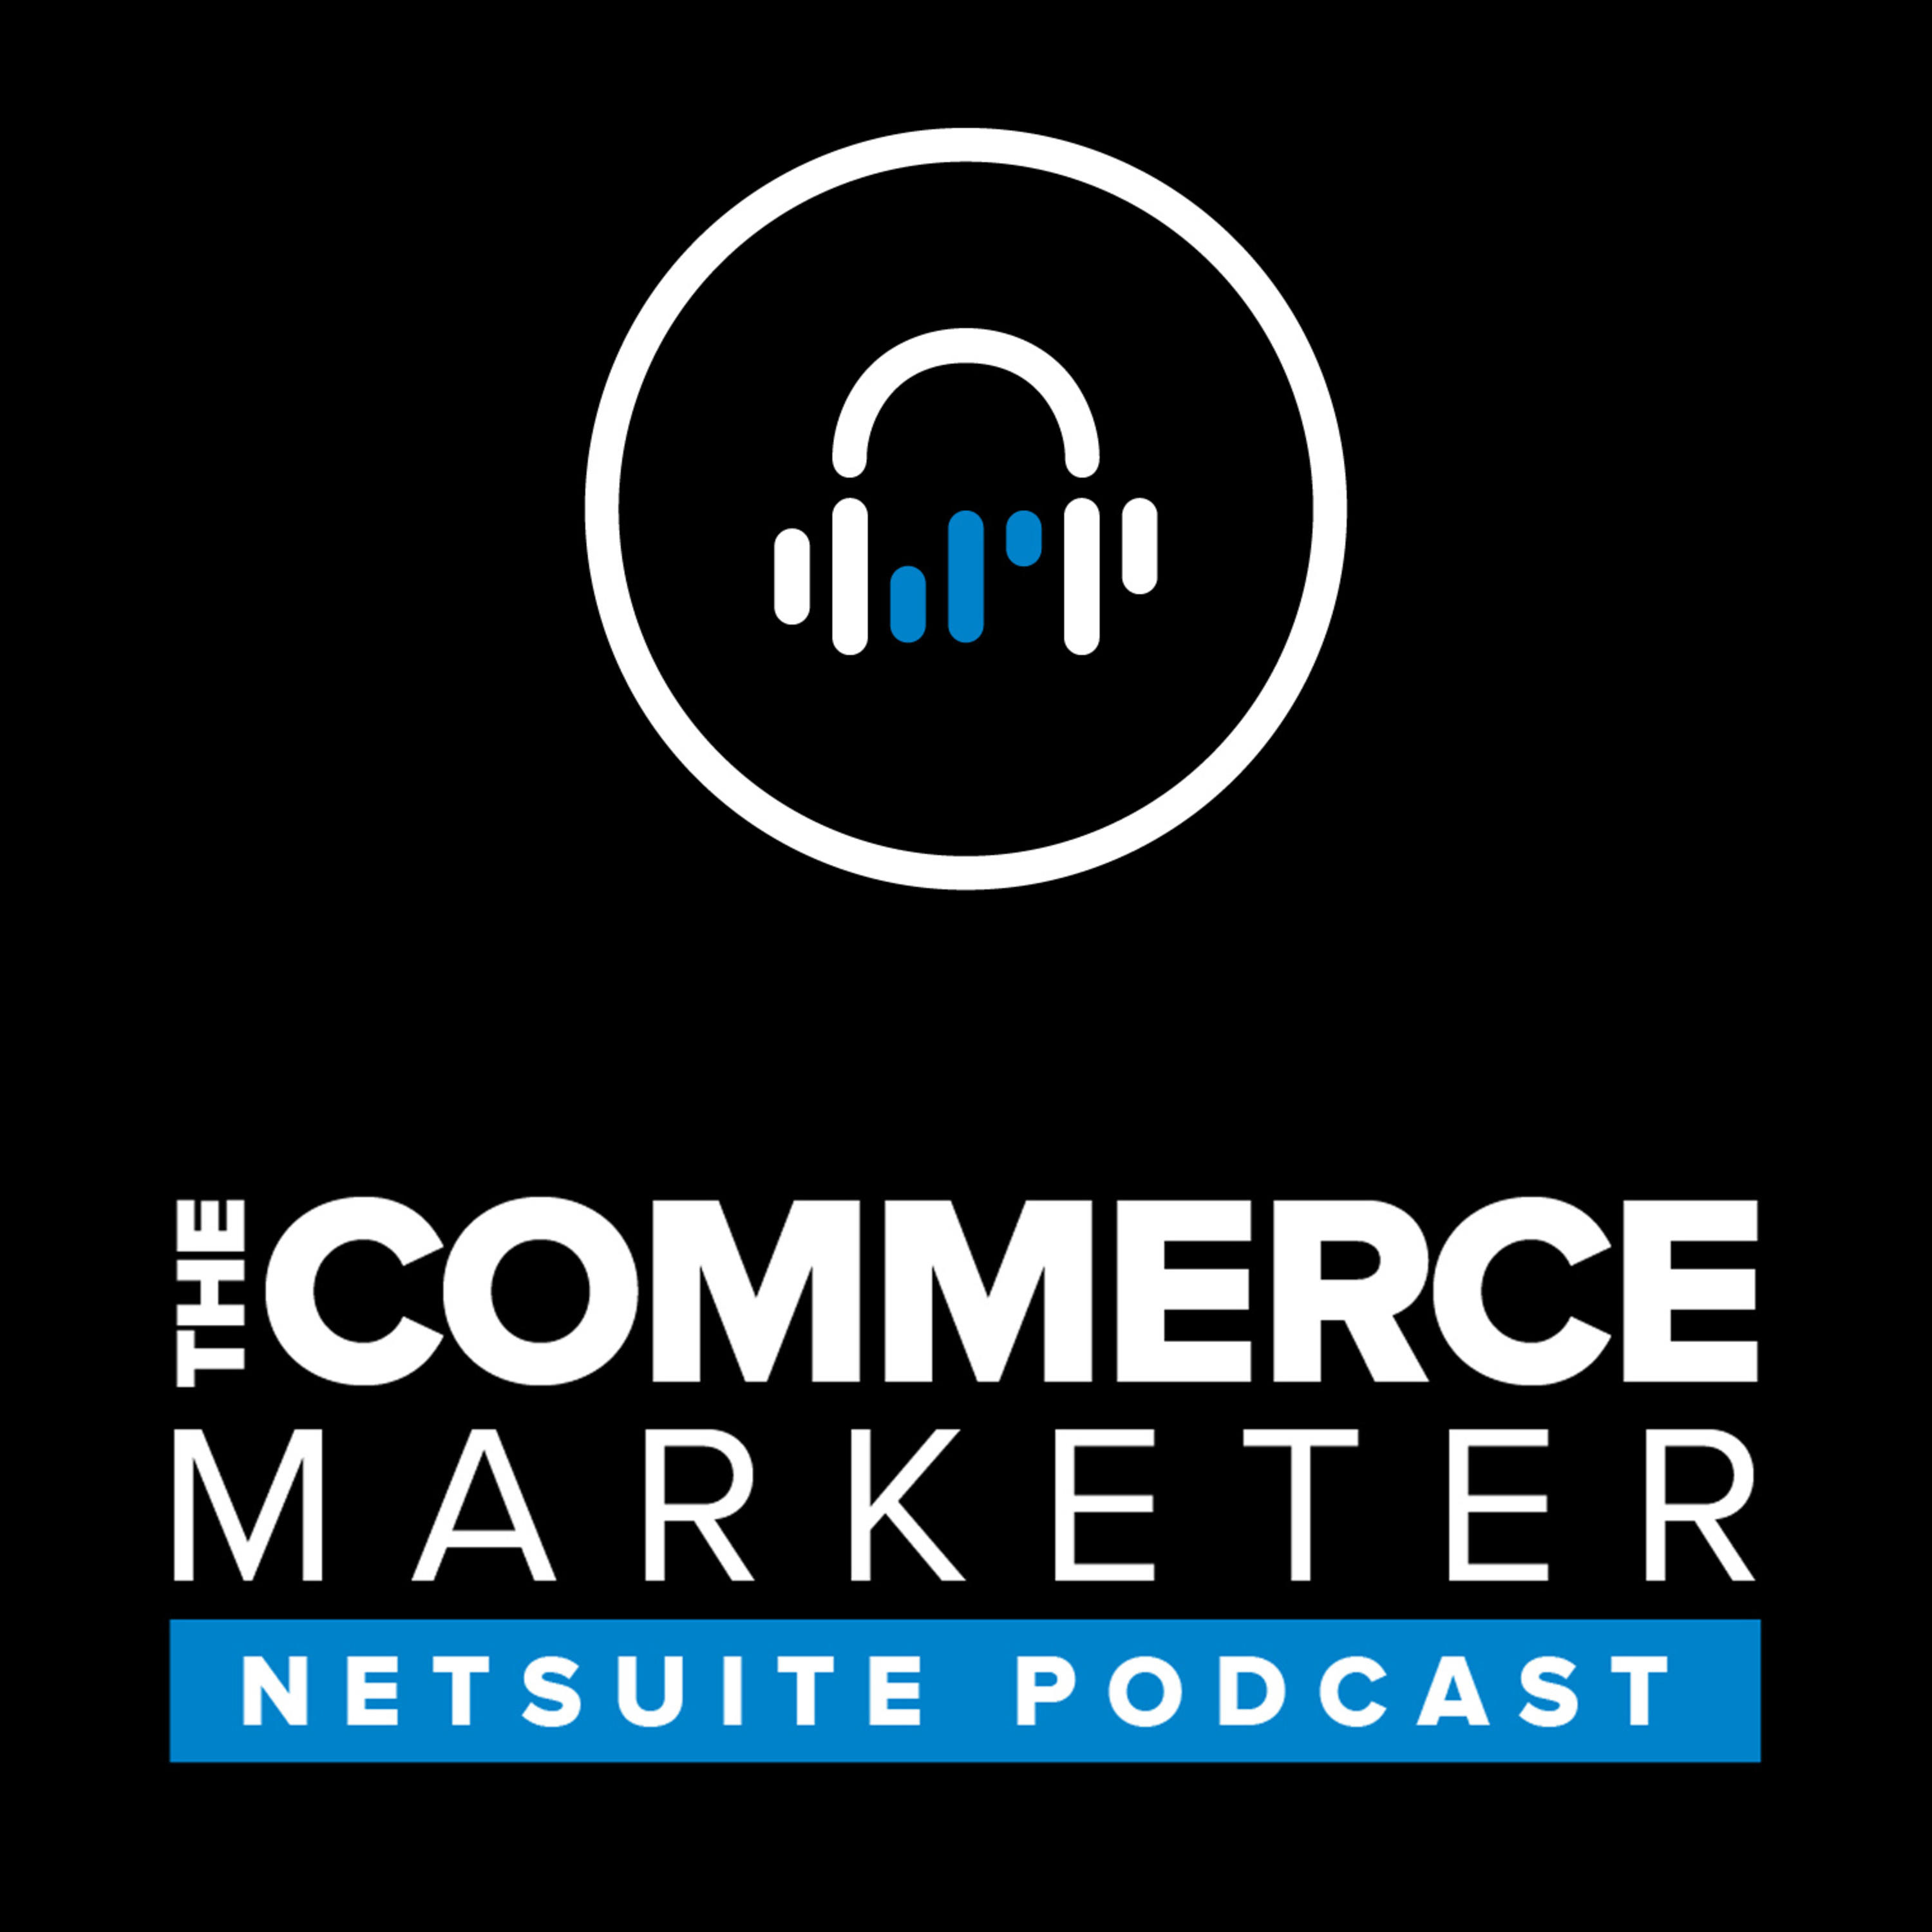 Episode 044: Post-Purchase Email Marketing